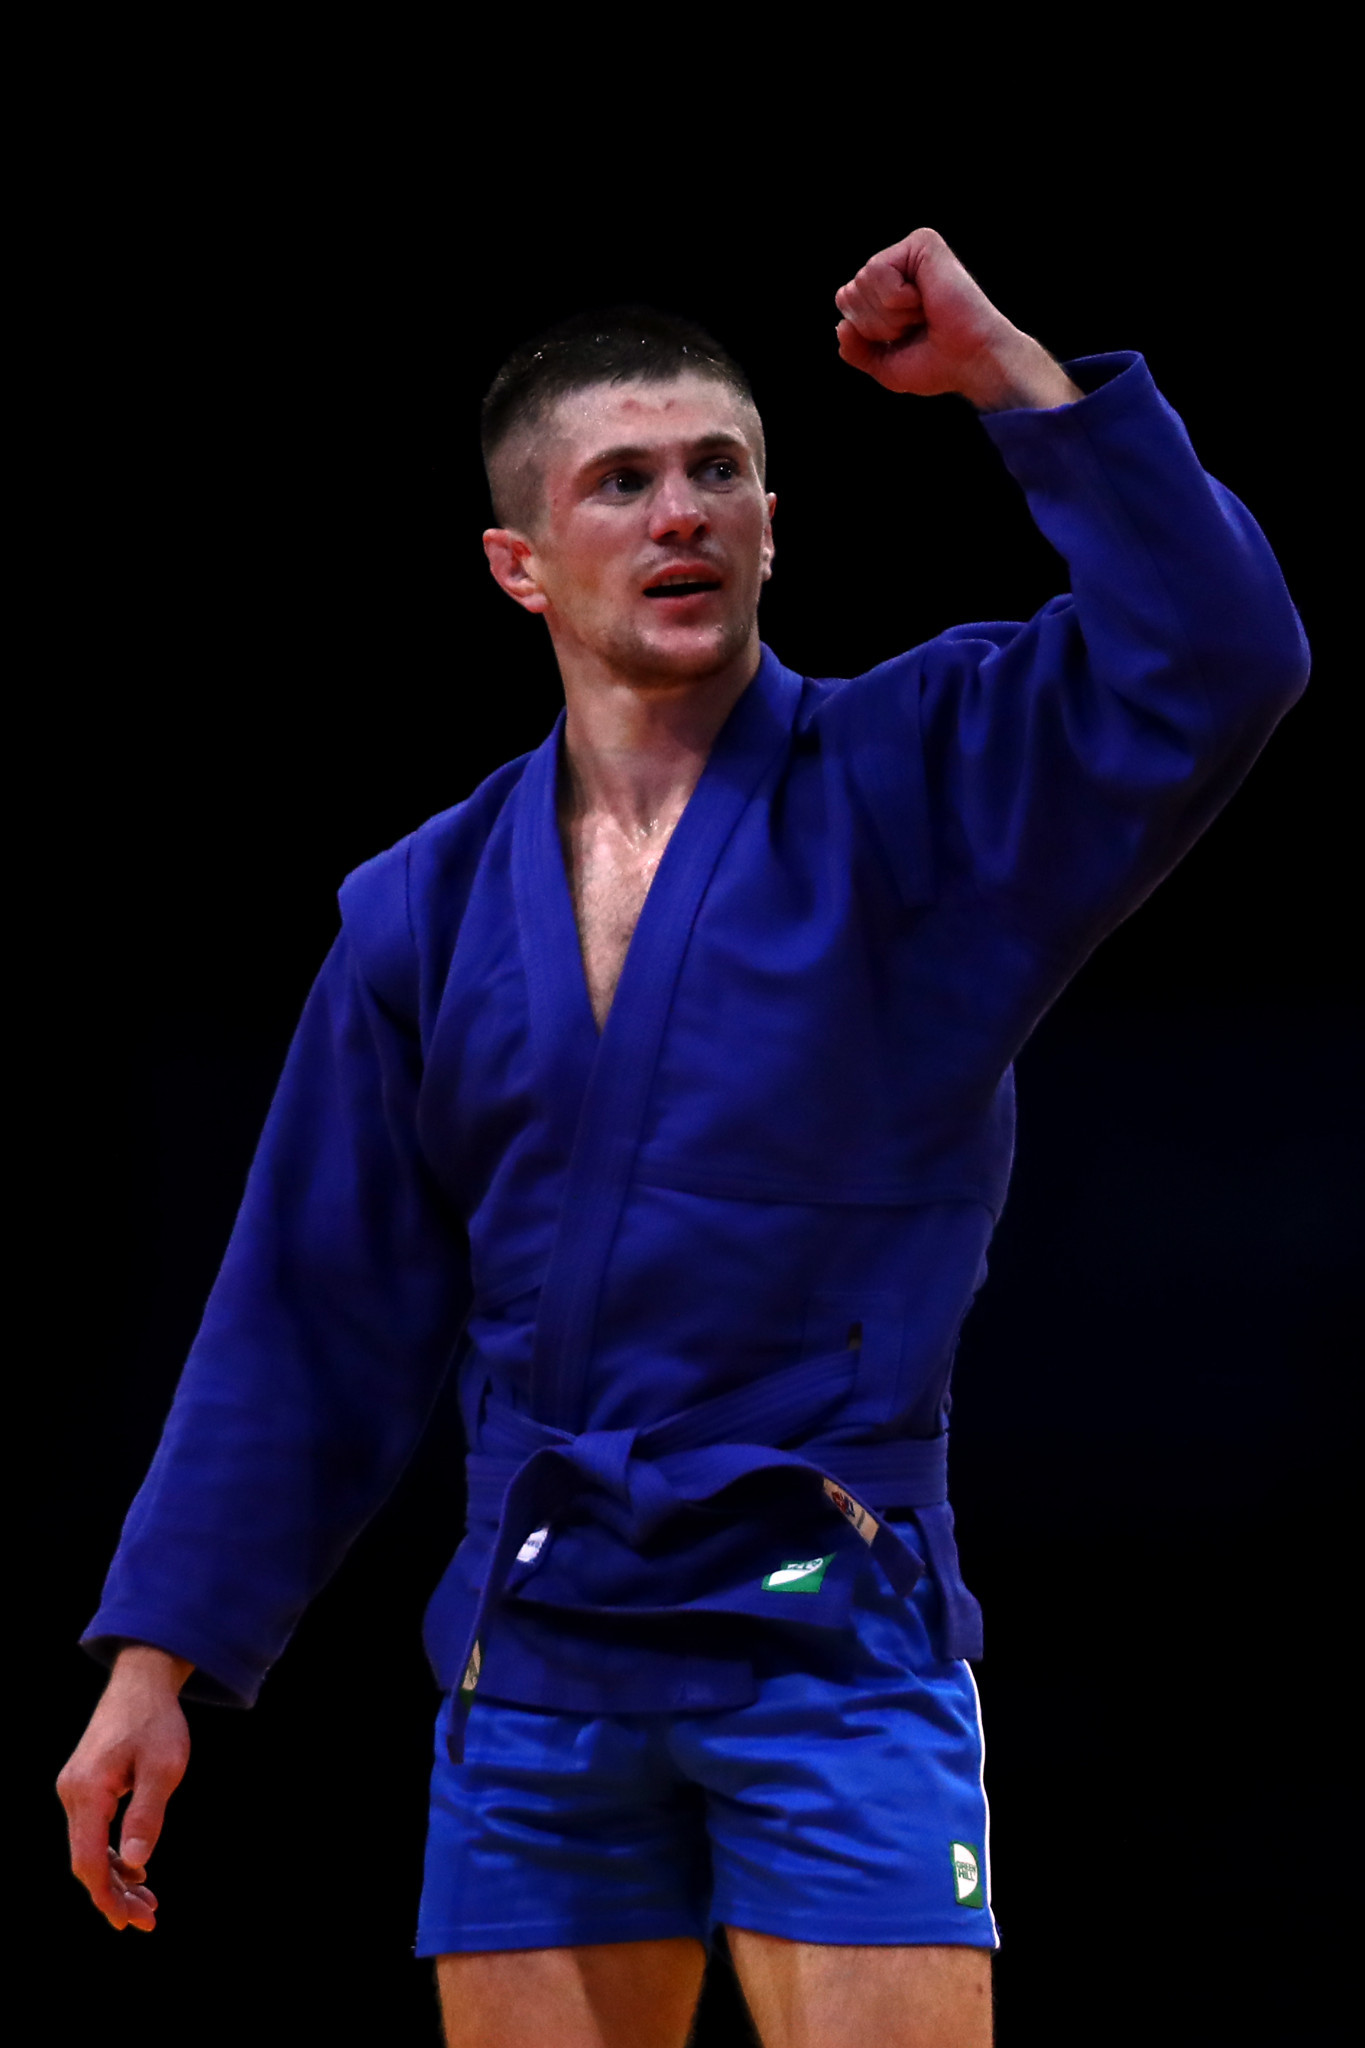 Home athlete Aliaksandr Koksha earned gold with a 5-0 win over Georgia's Mindia Liluashvili in the men's under-68kg category.©Getty Images